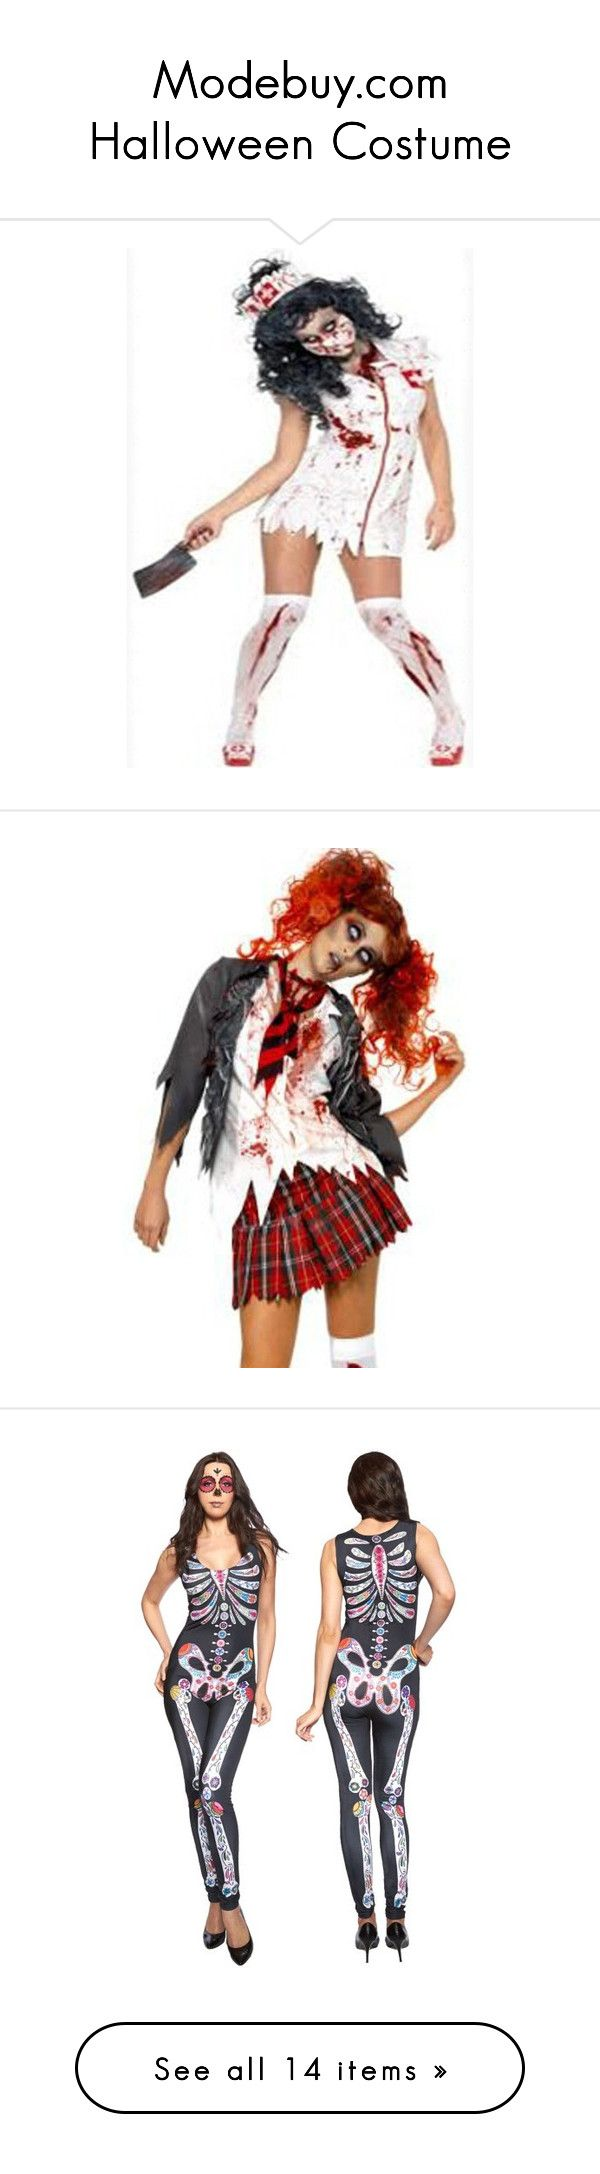 """Modebuy.com Halloween Costume"" by modebuy ❤ liked on Polyvore featuring modebuy, costumes, adult halloween costumes, zombie nurse costume, adult zombie costume, living dead costume, adult nurse costume, zombie costume, zombie school girl and holiday costumes"